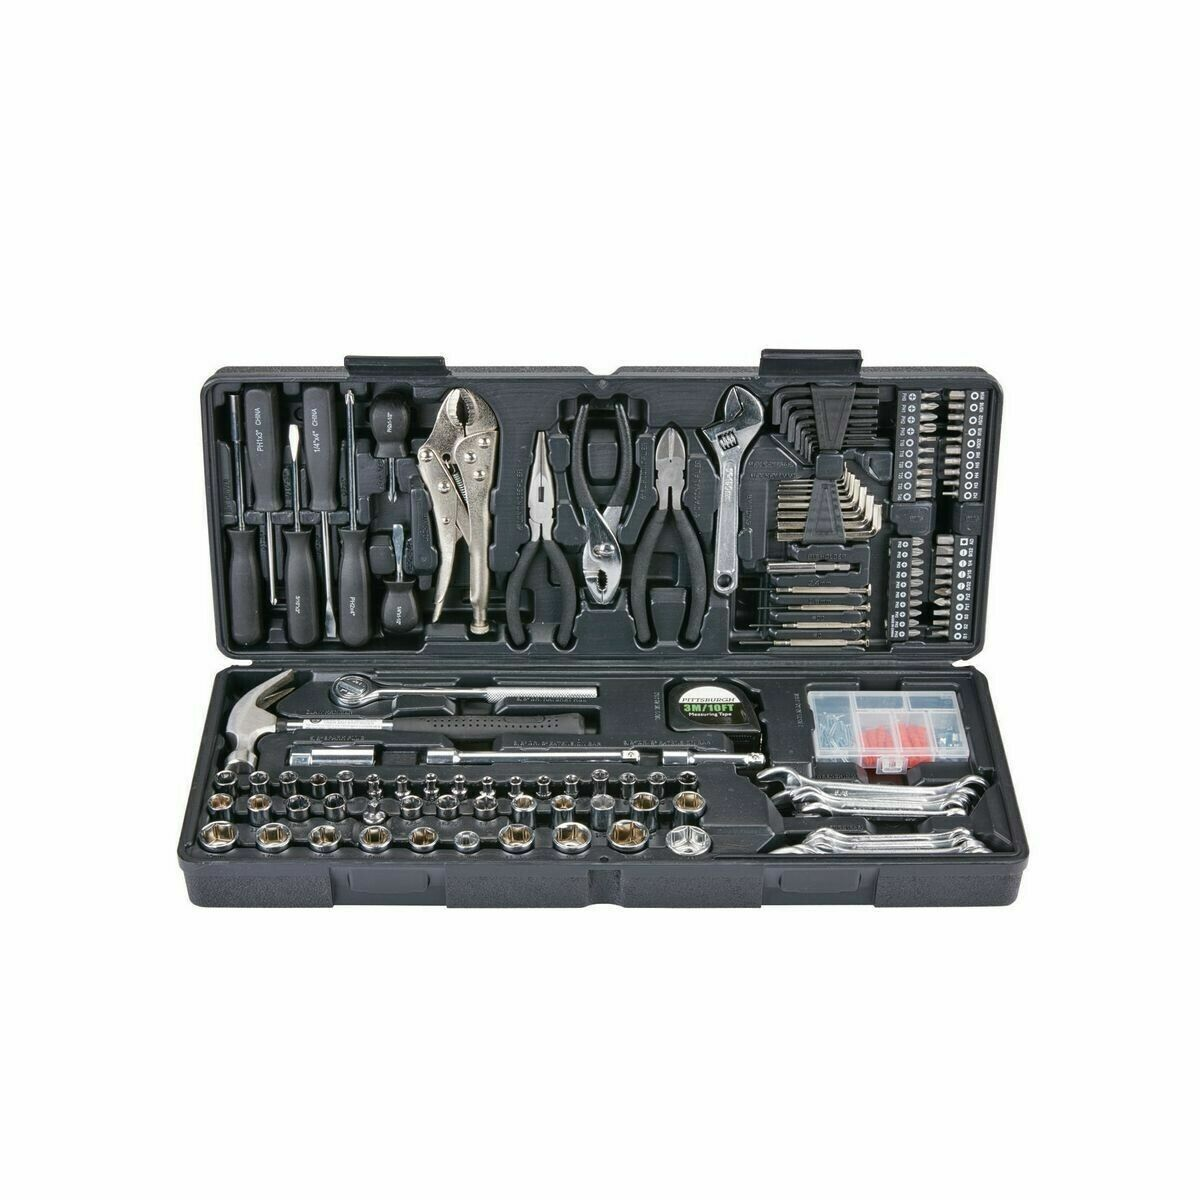 PITTSBURGH 130 PC TOOL KIT WITH CASE AUTO or HOME REPAIR KIT